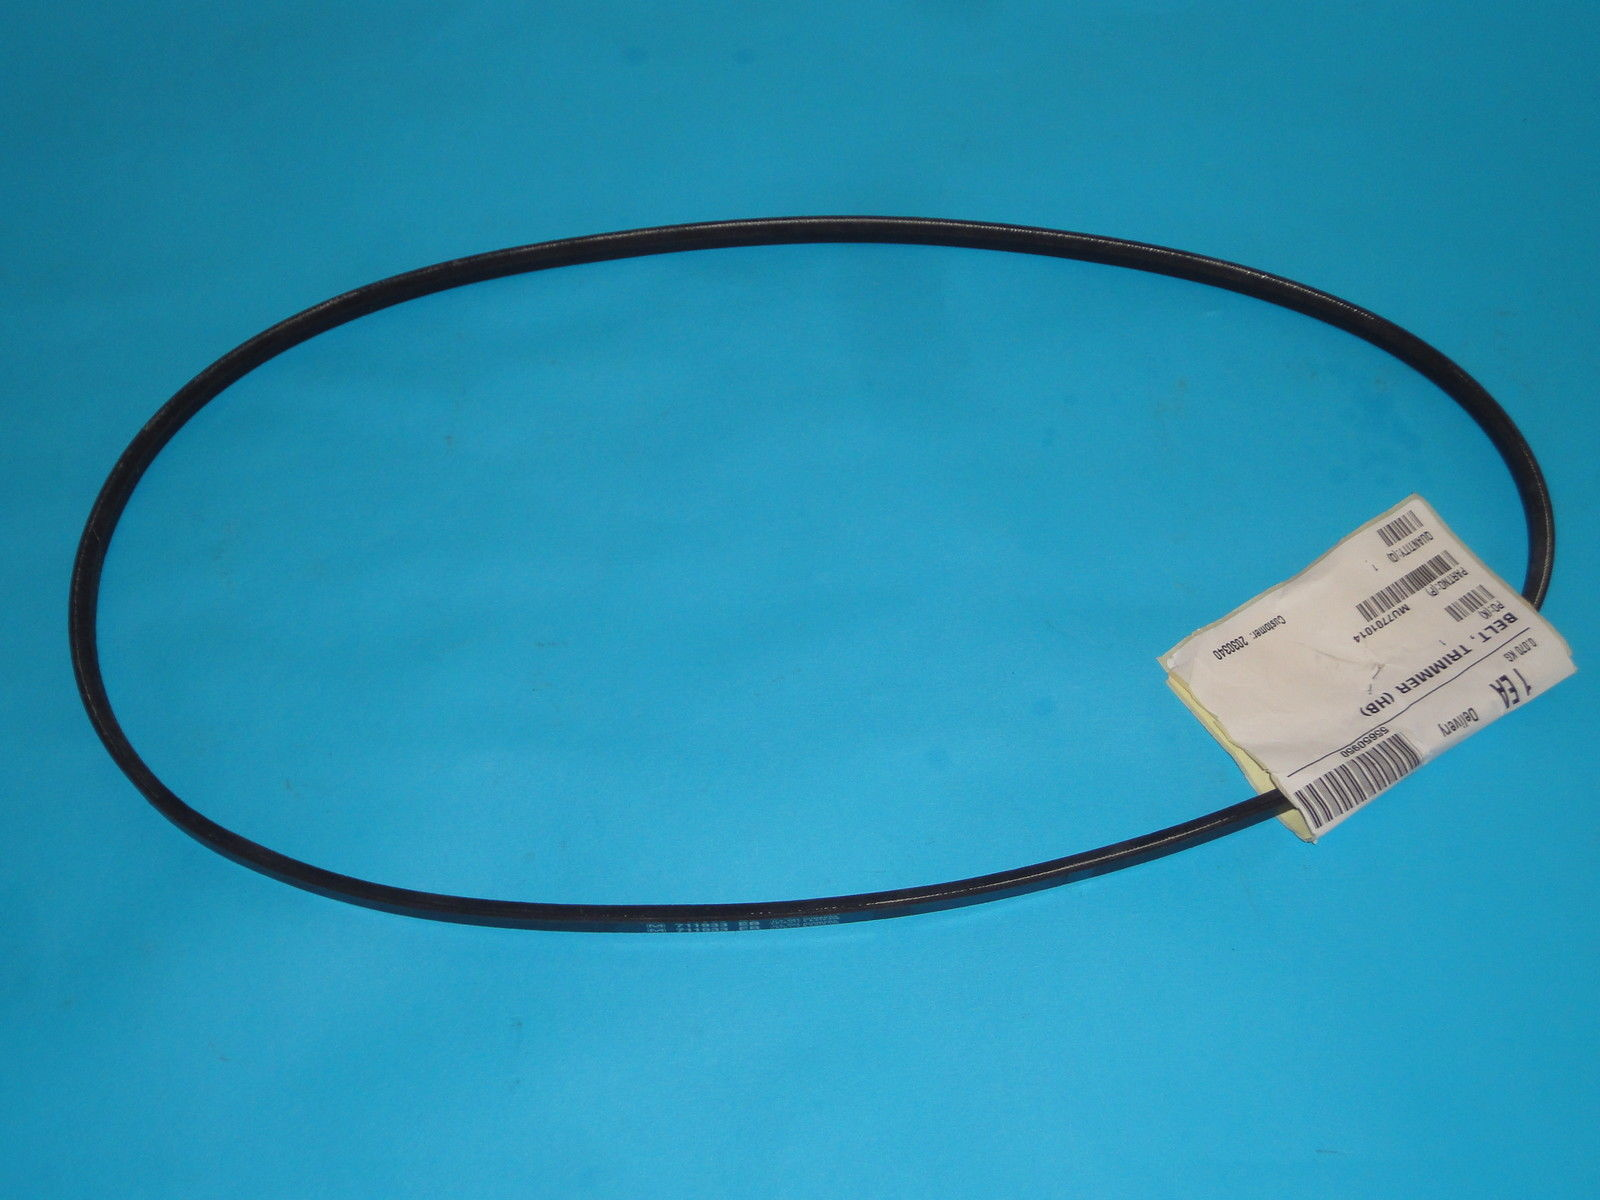 HAYTER MU7701014 TRIMMER HB BELT 407C-D-S HAYTER TRIMMER BELT